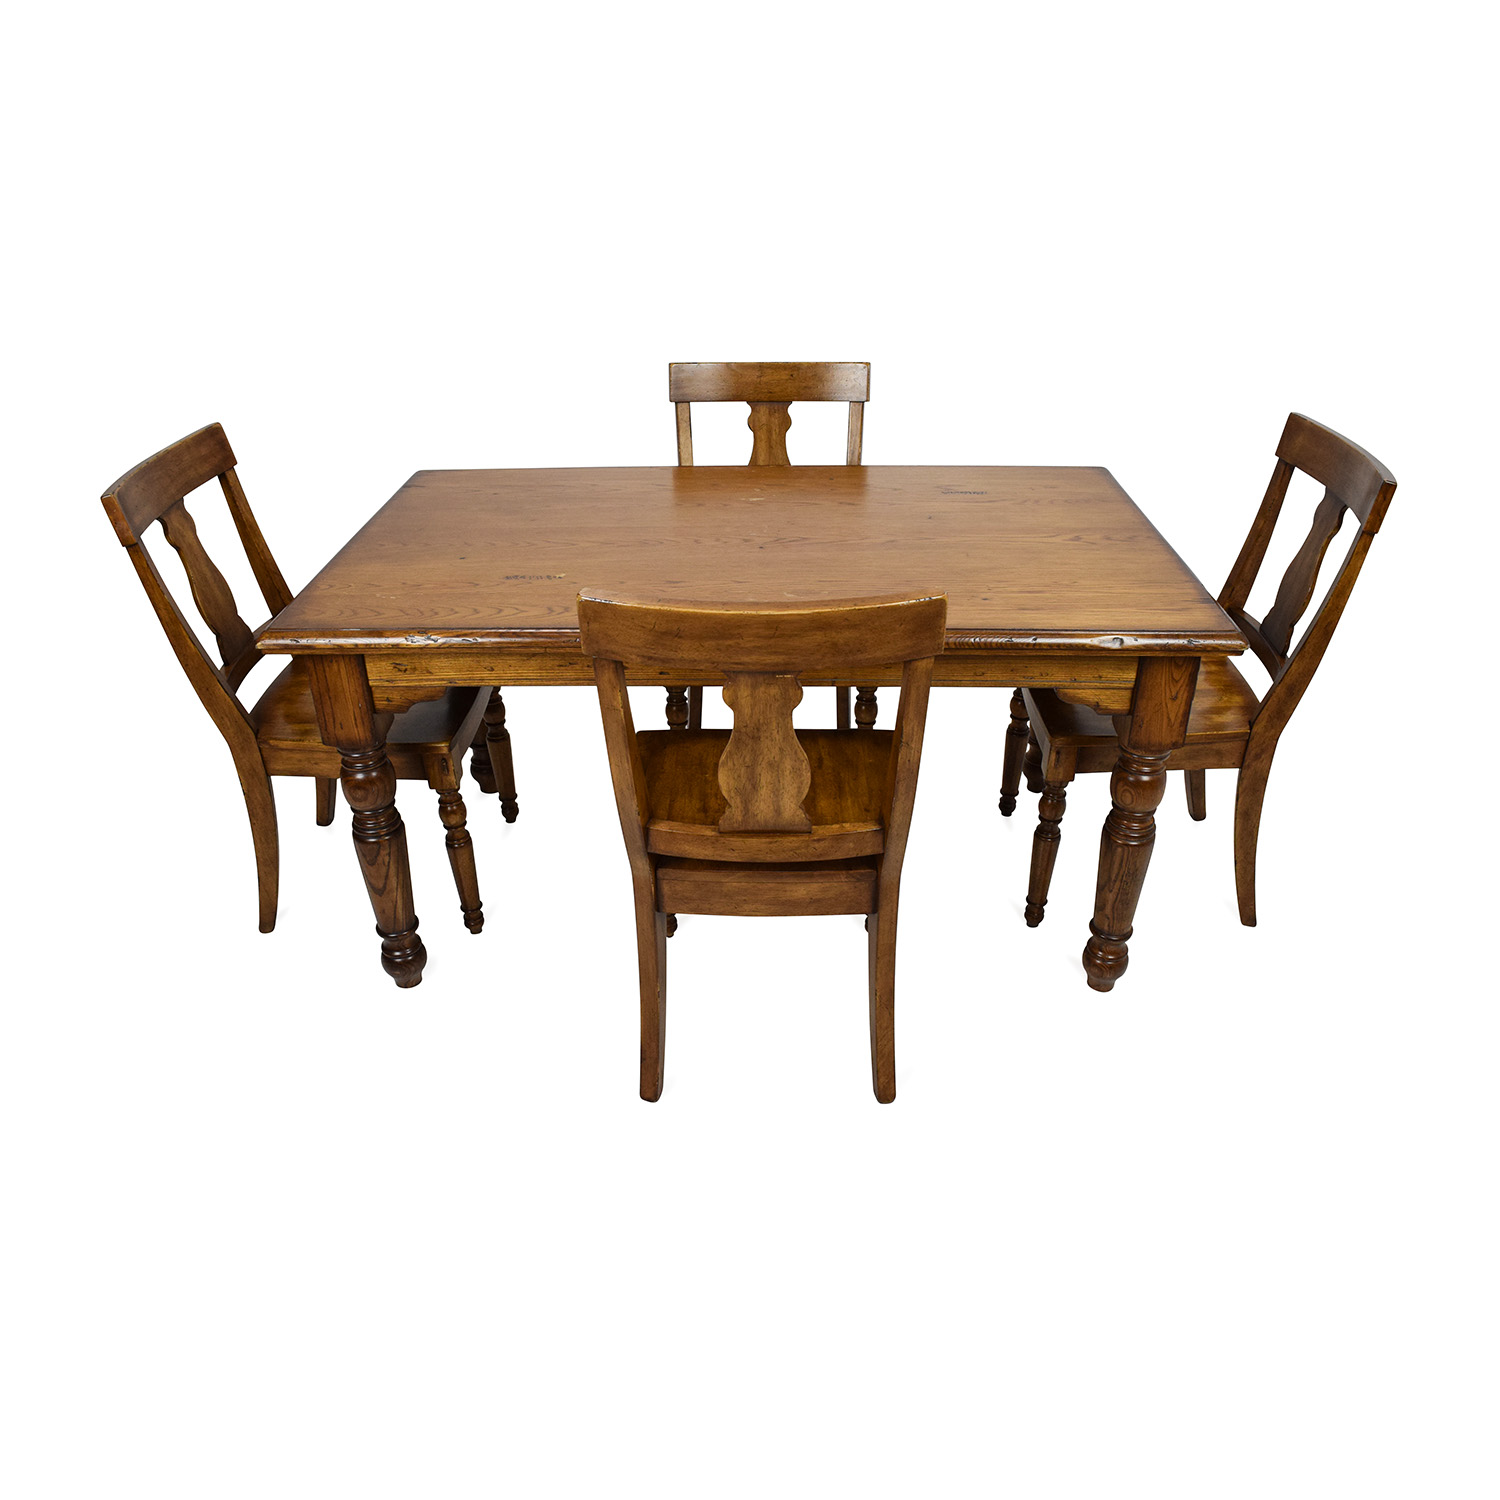 85% OFF - Pottery Barn Pottery Barn Solid Wood Dining Set / Tables